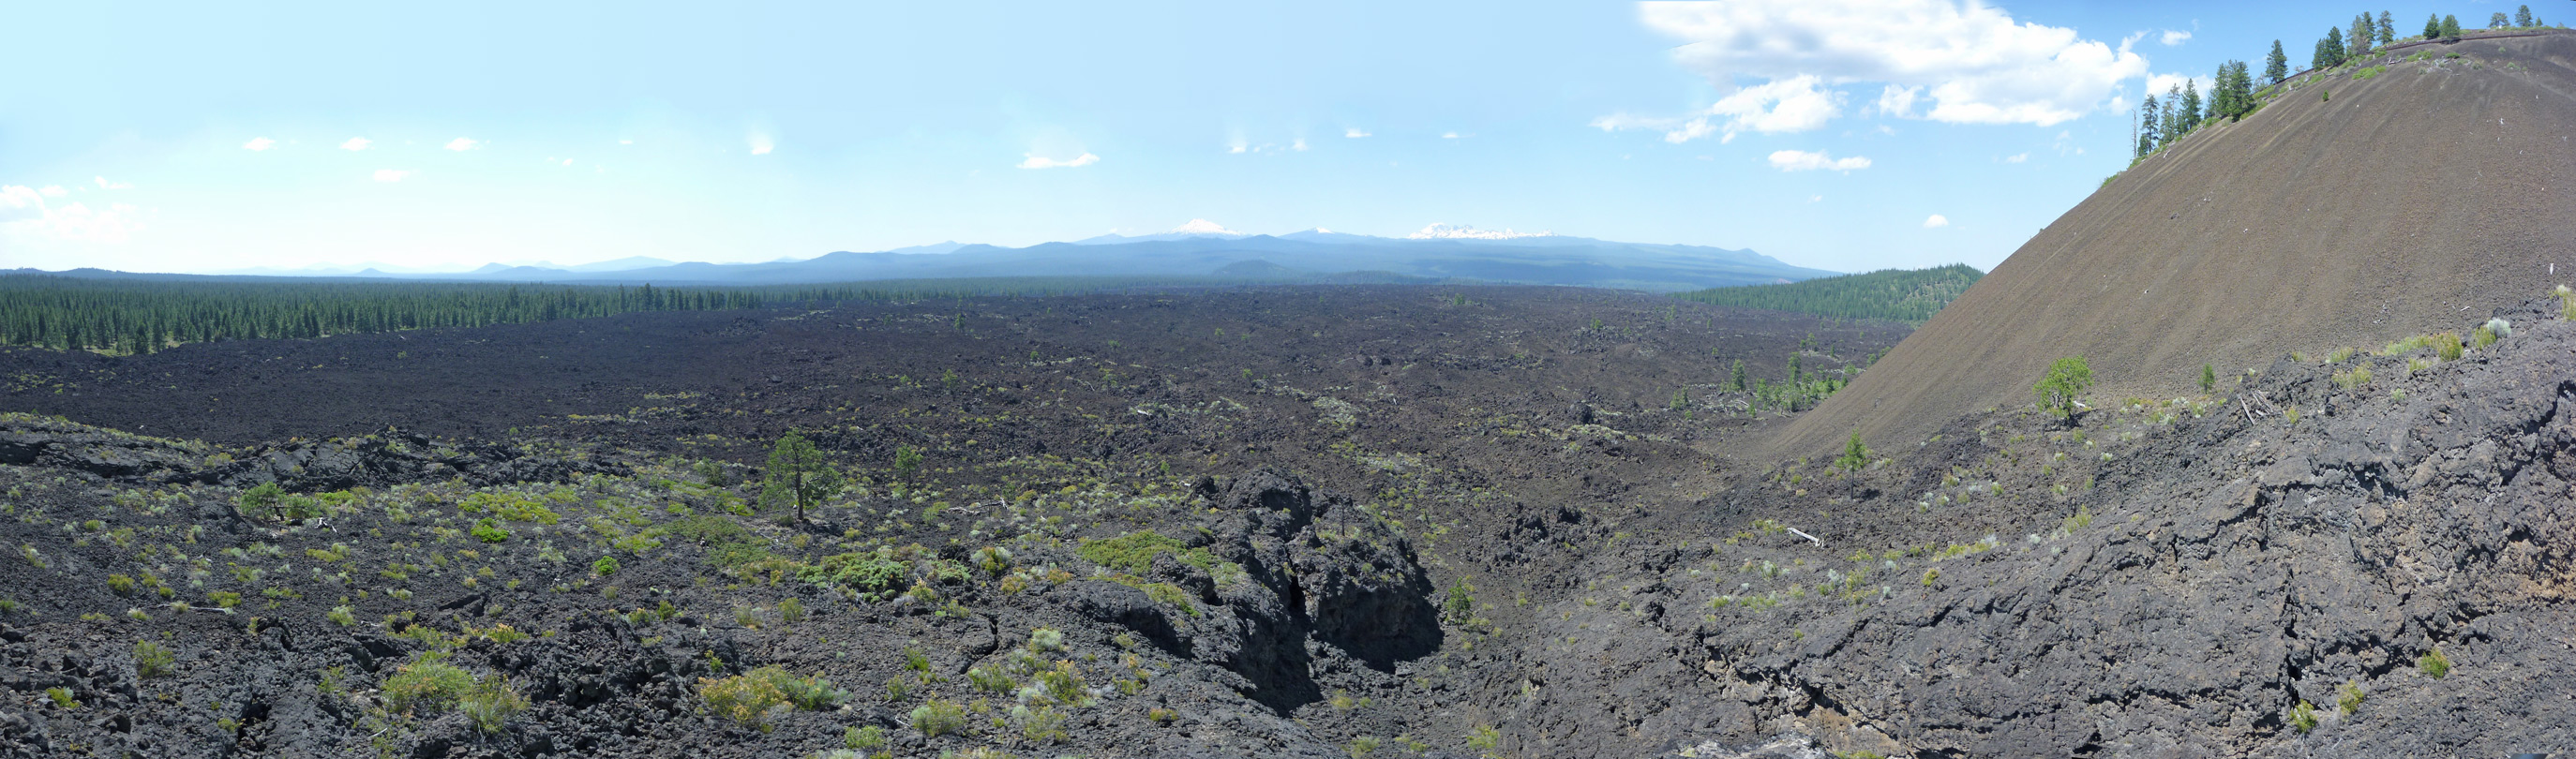 Lava Butte and the lava fields